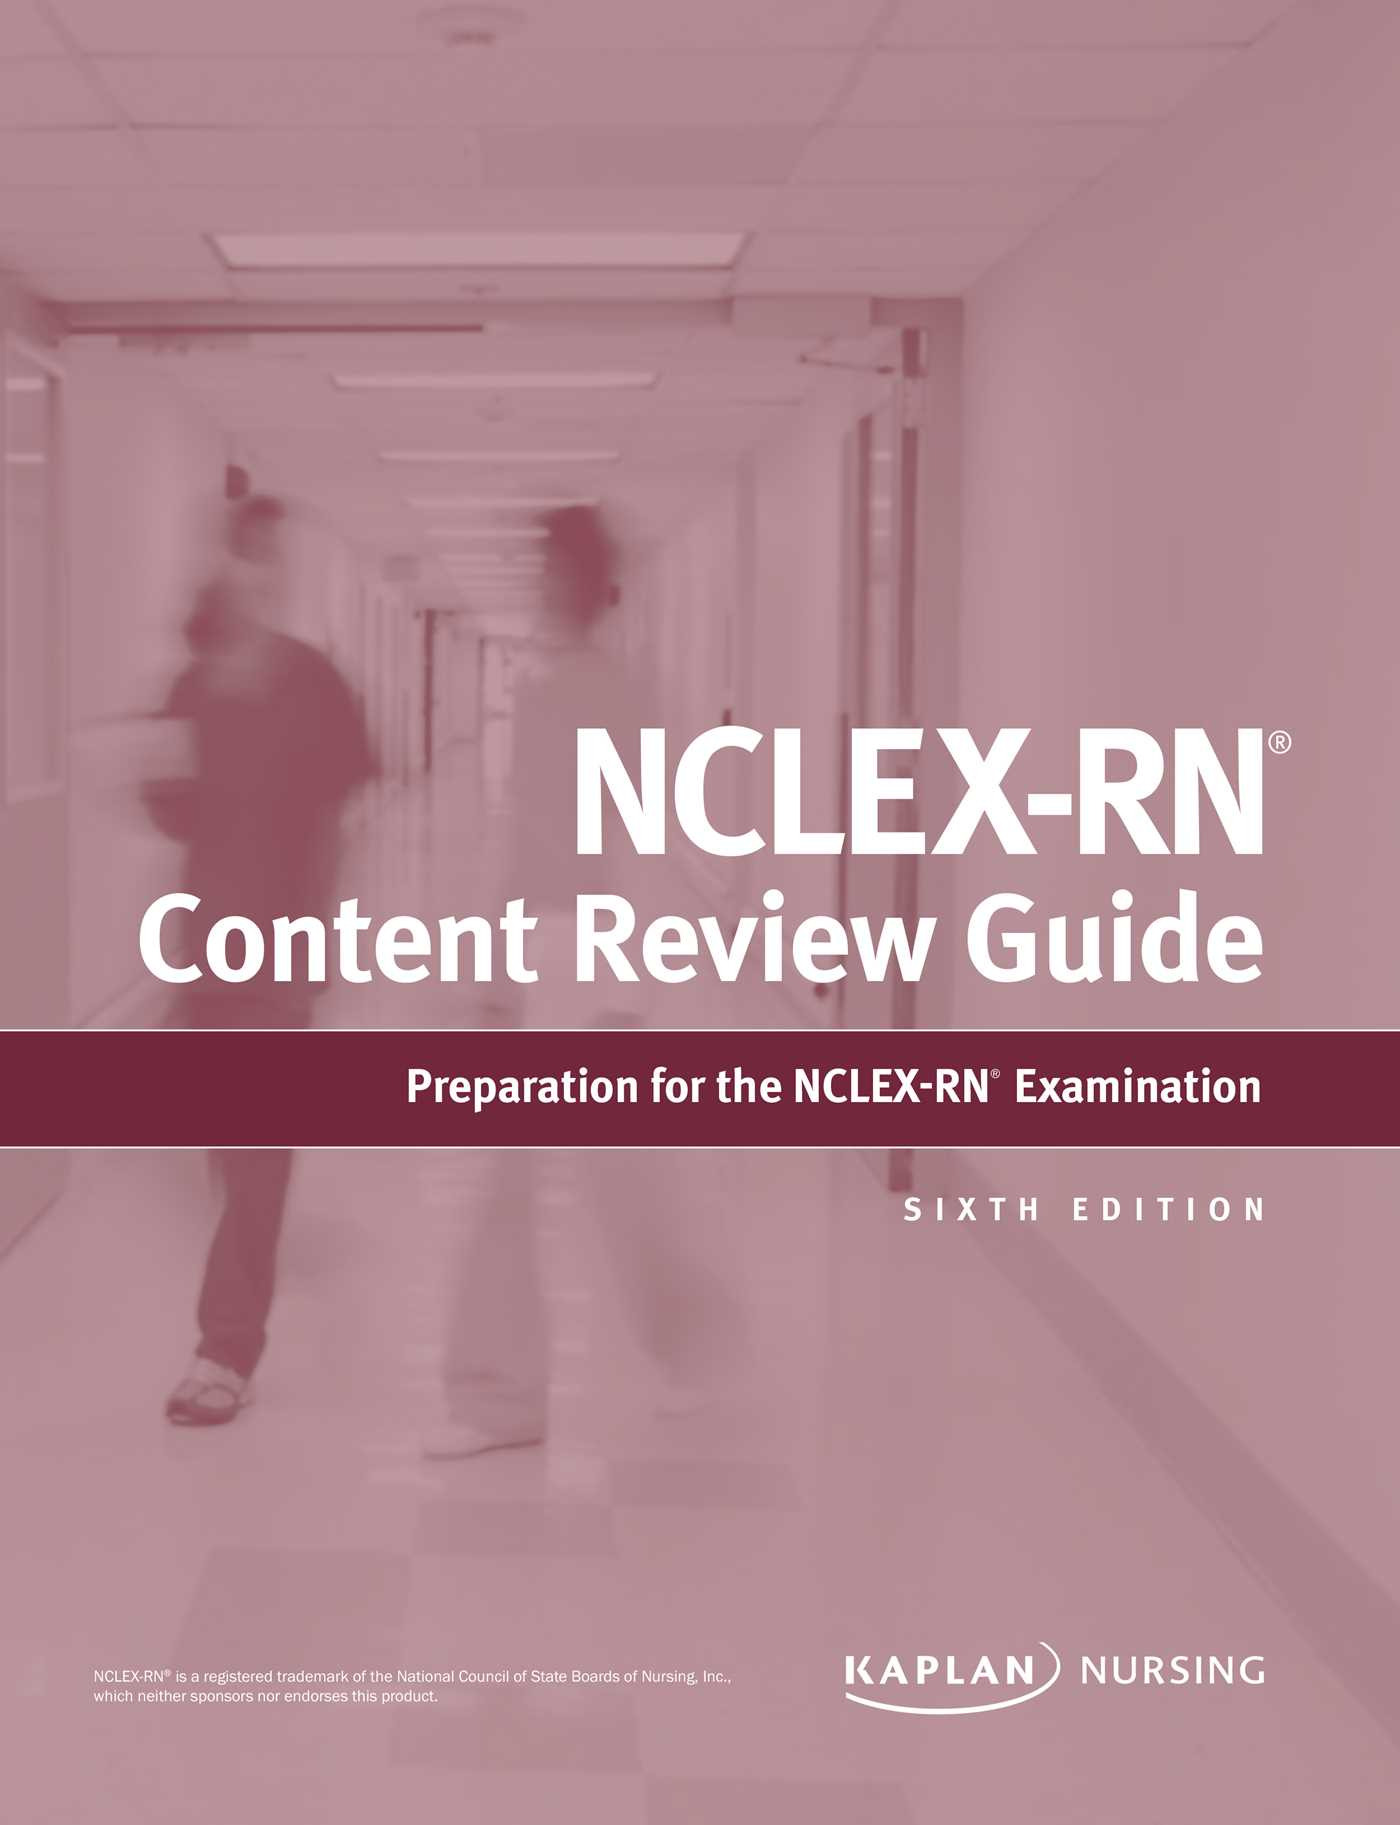 nclex rn content review guide 9781506233628 hr